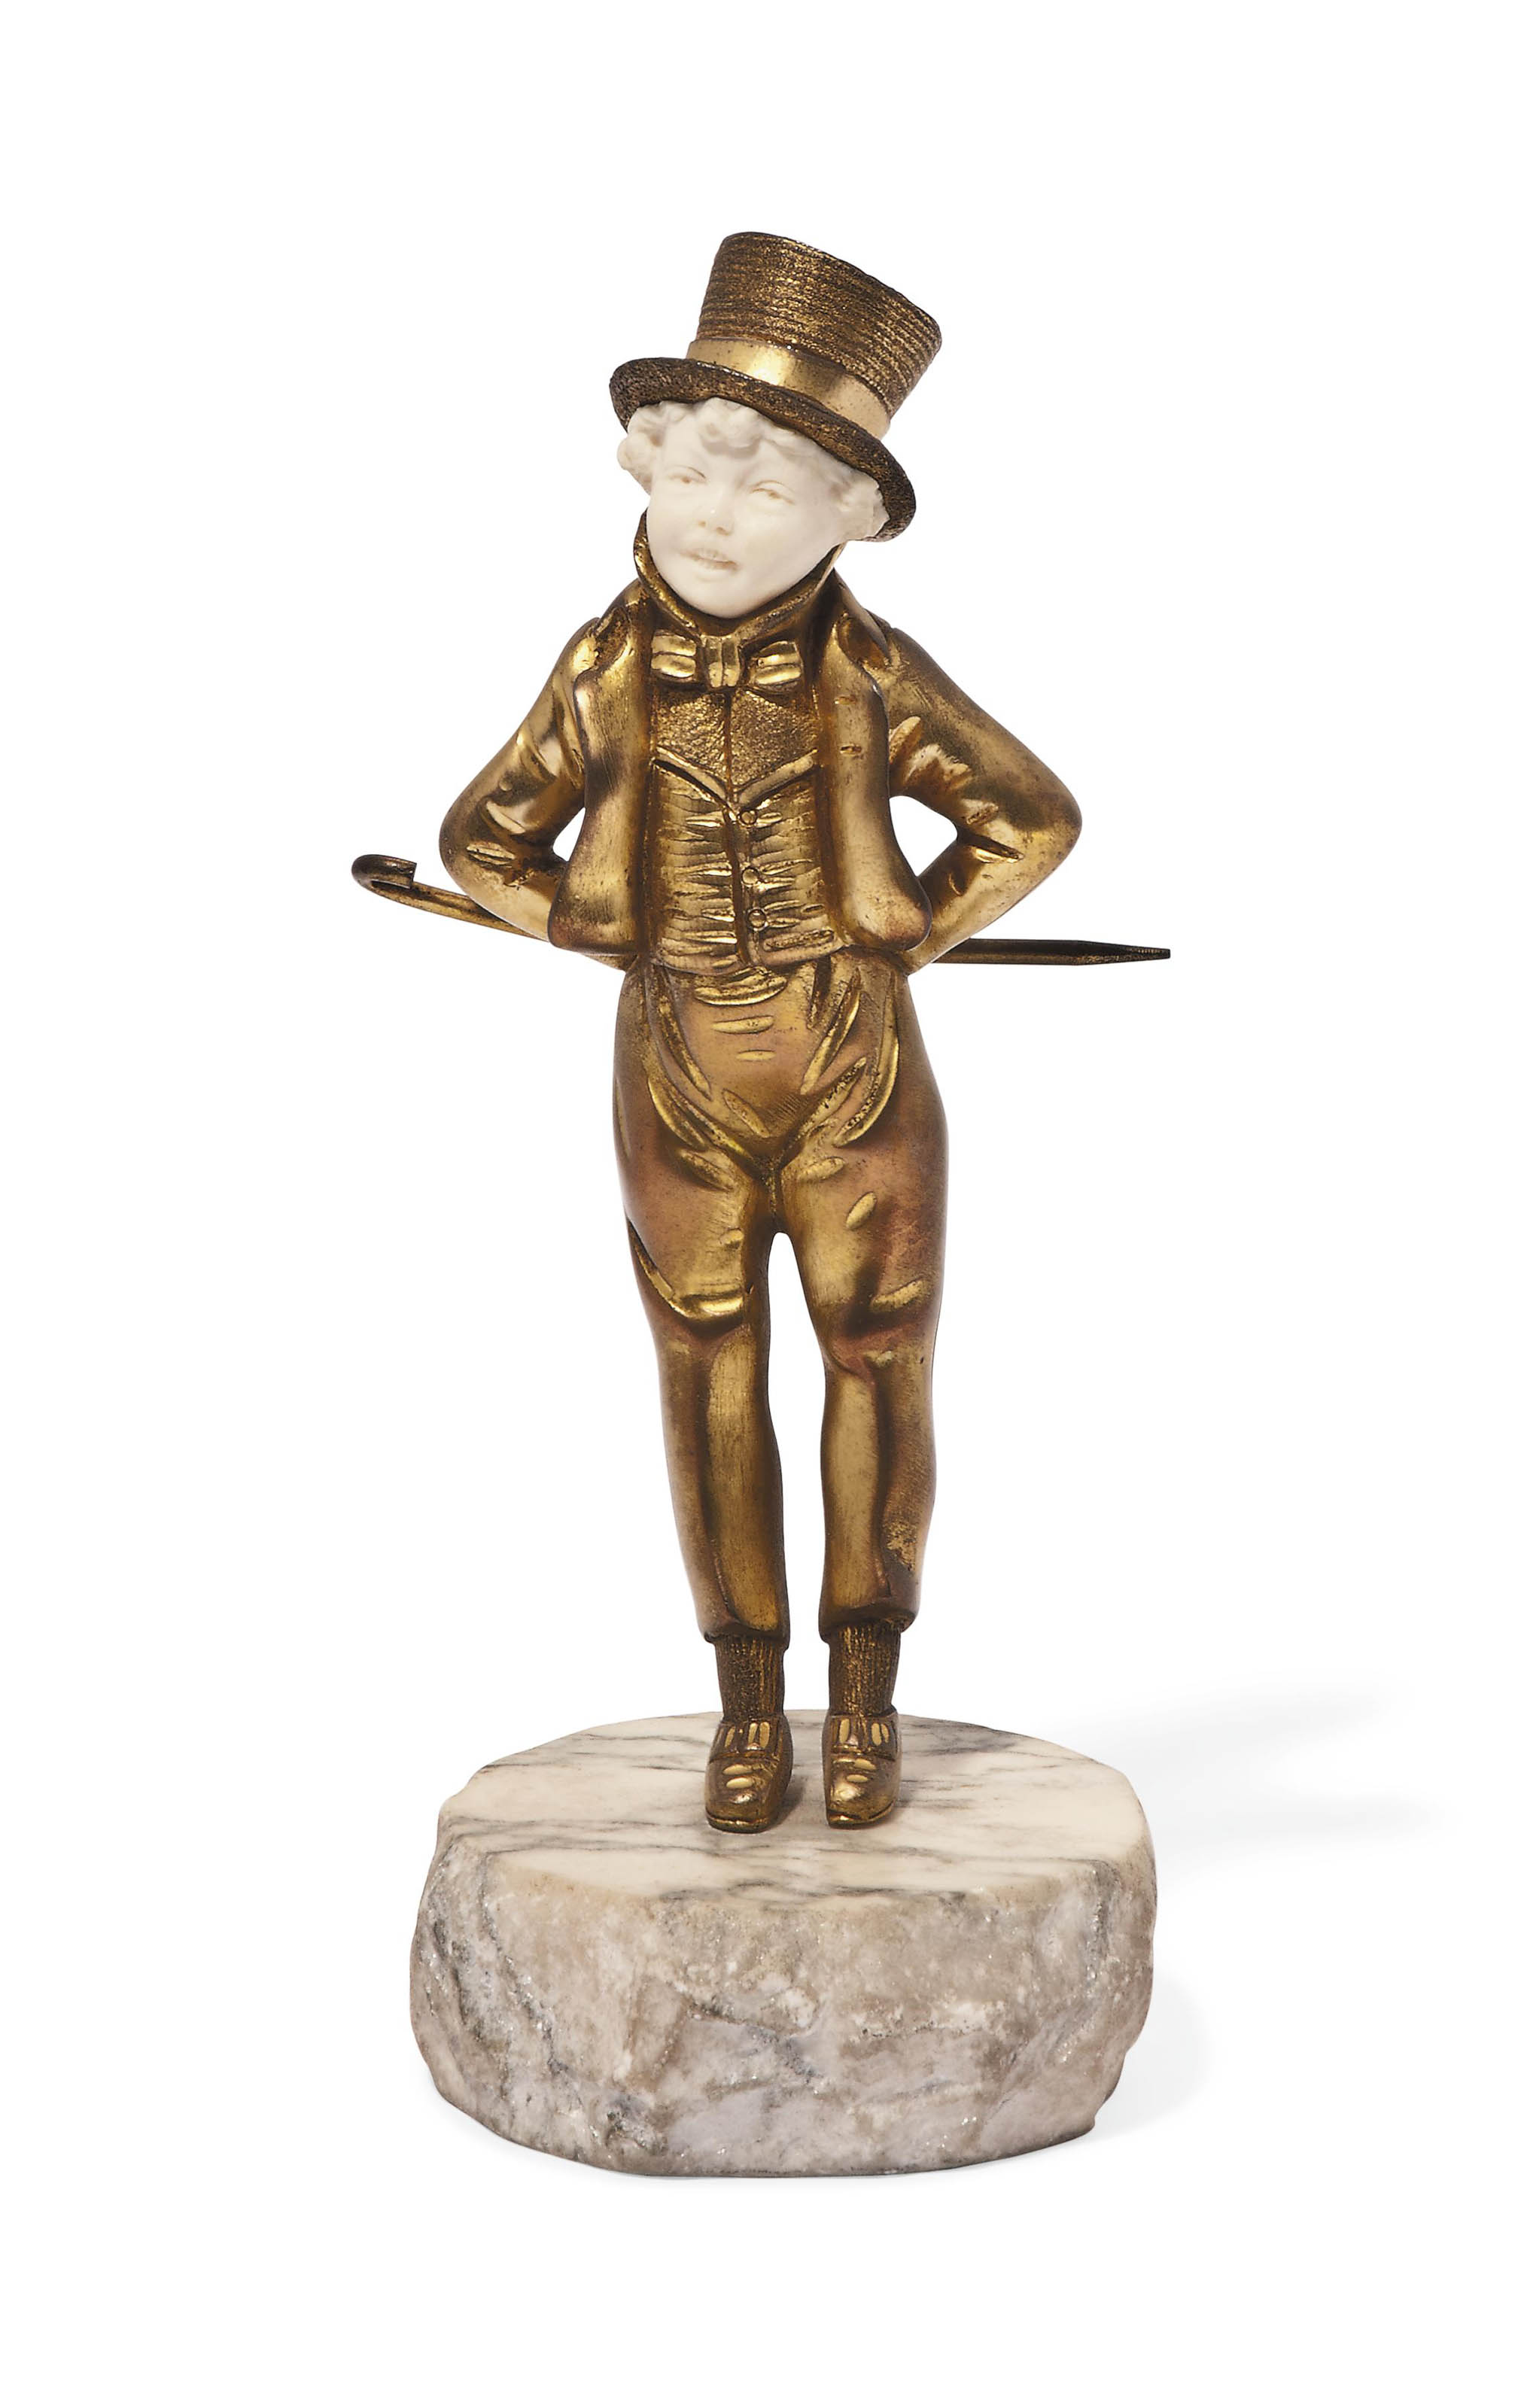 'THE YOUNG GENTLEMAN' A GEORGE OMERTH GILT-BRONZE AND IVORY FIGURE